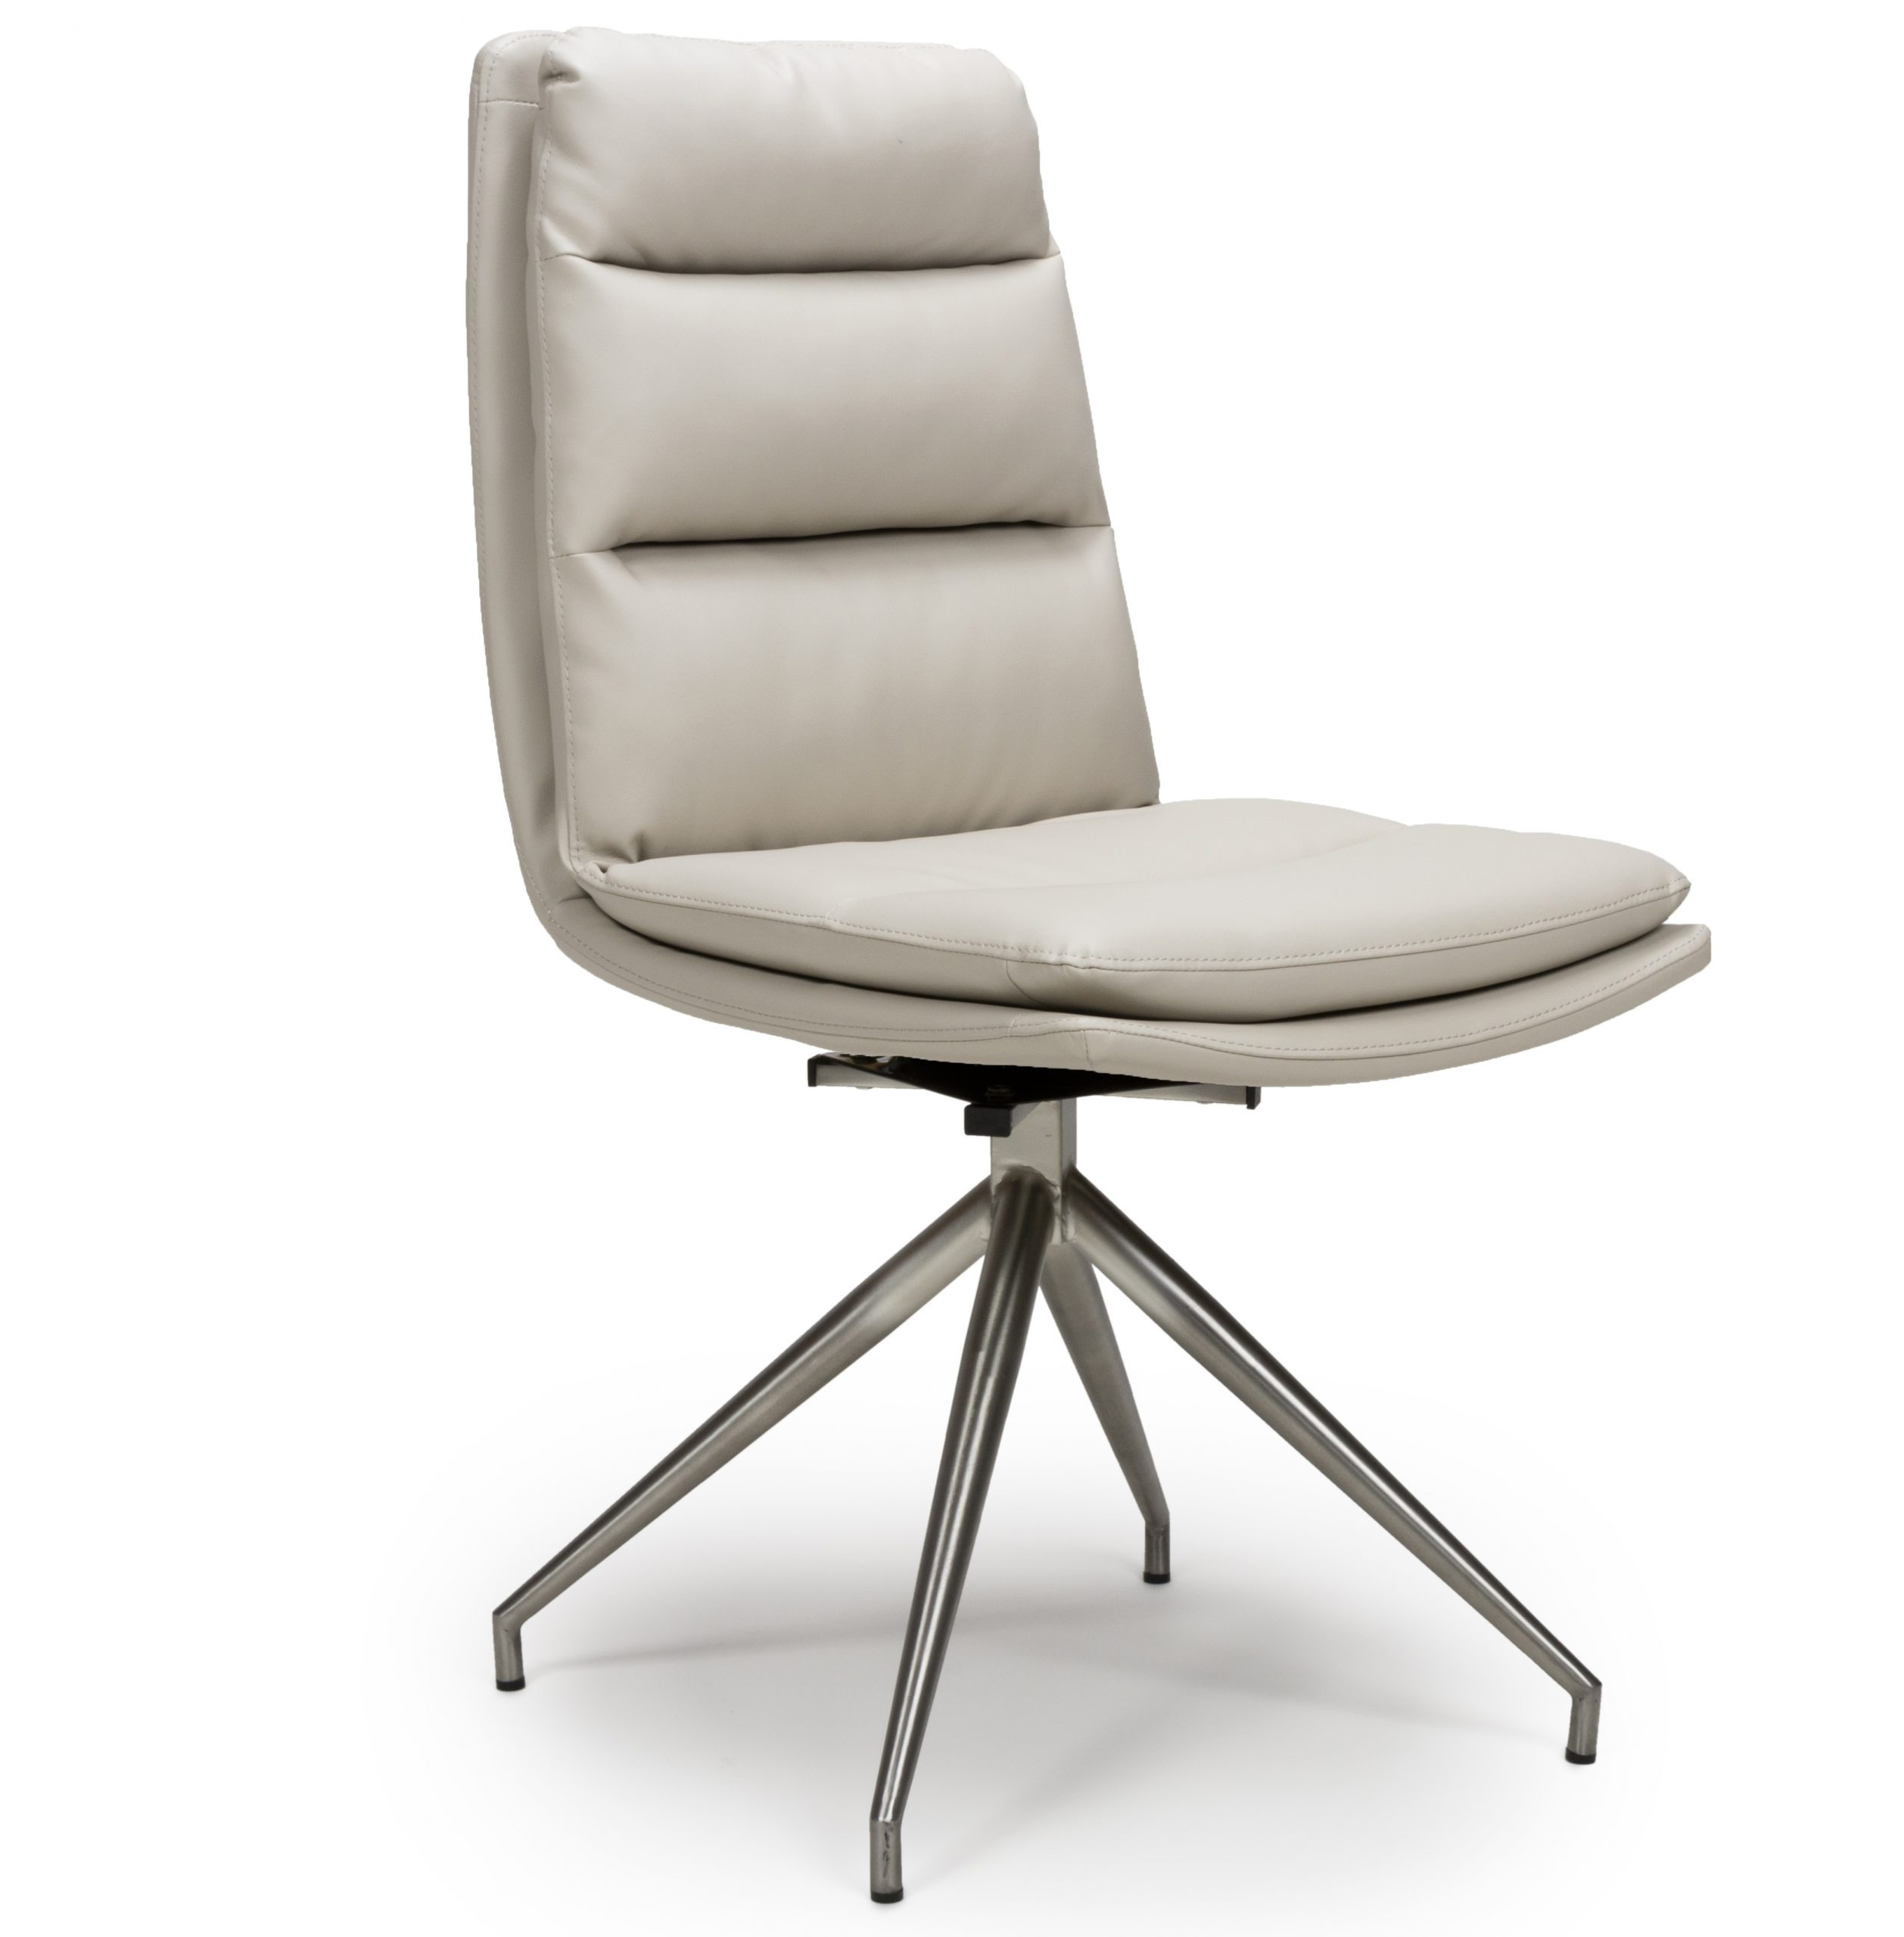 Dallas Taupe Leather Swivel Dining chair Steel Legs